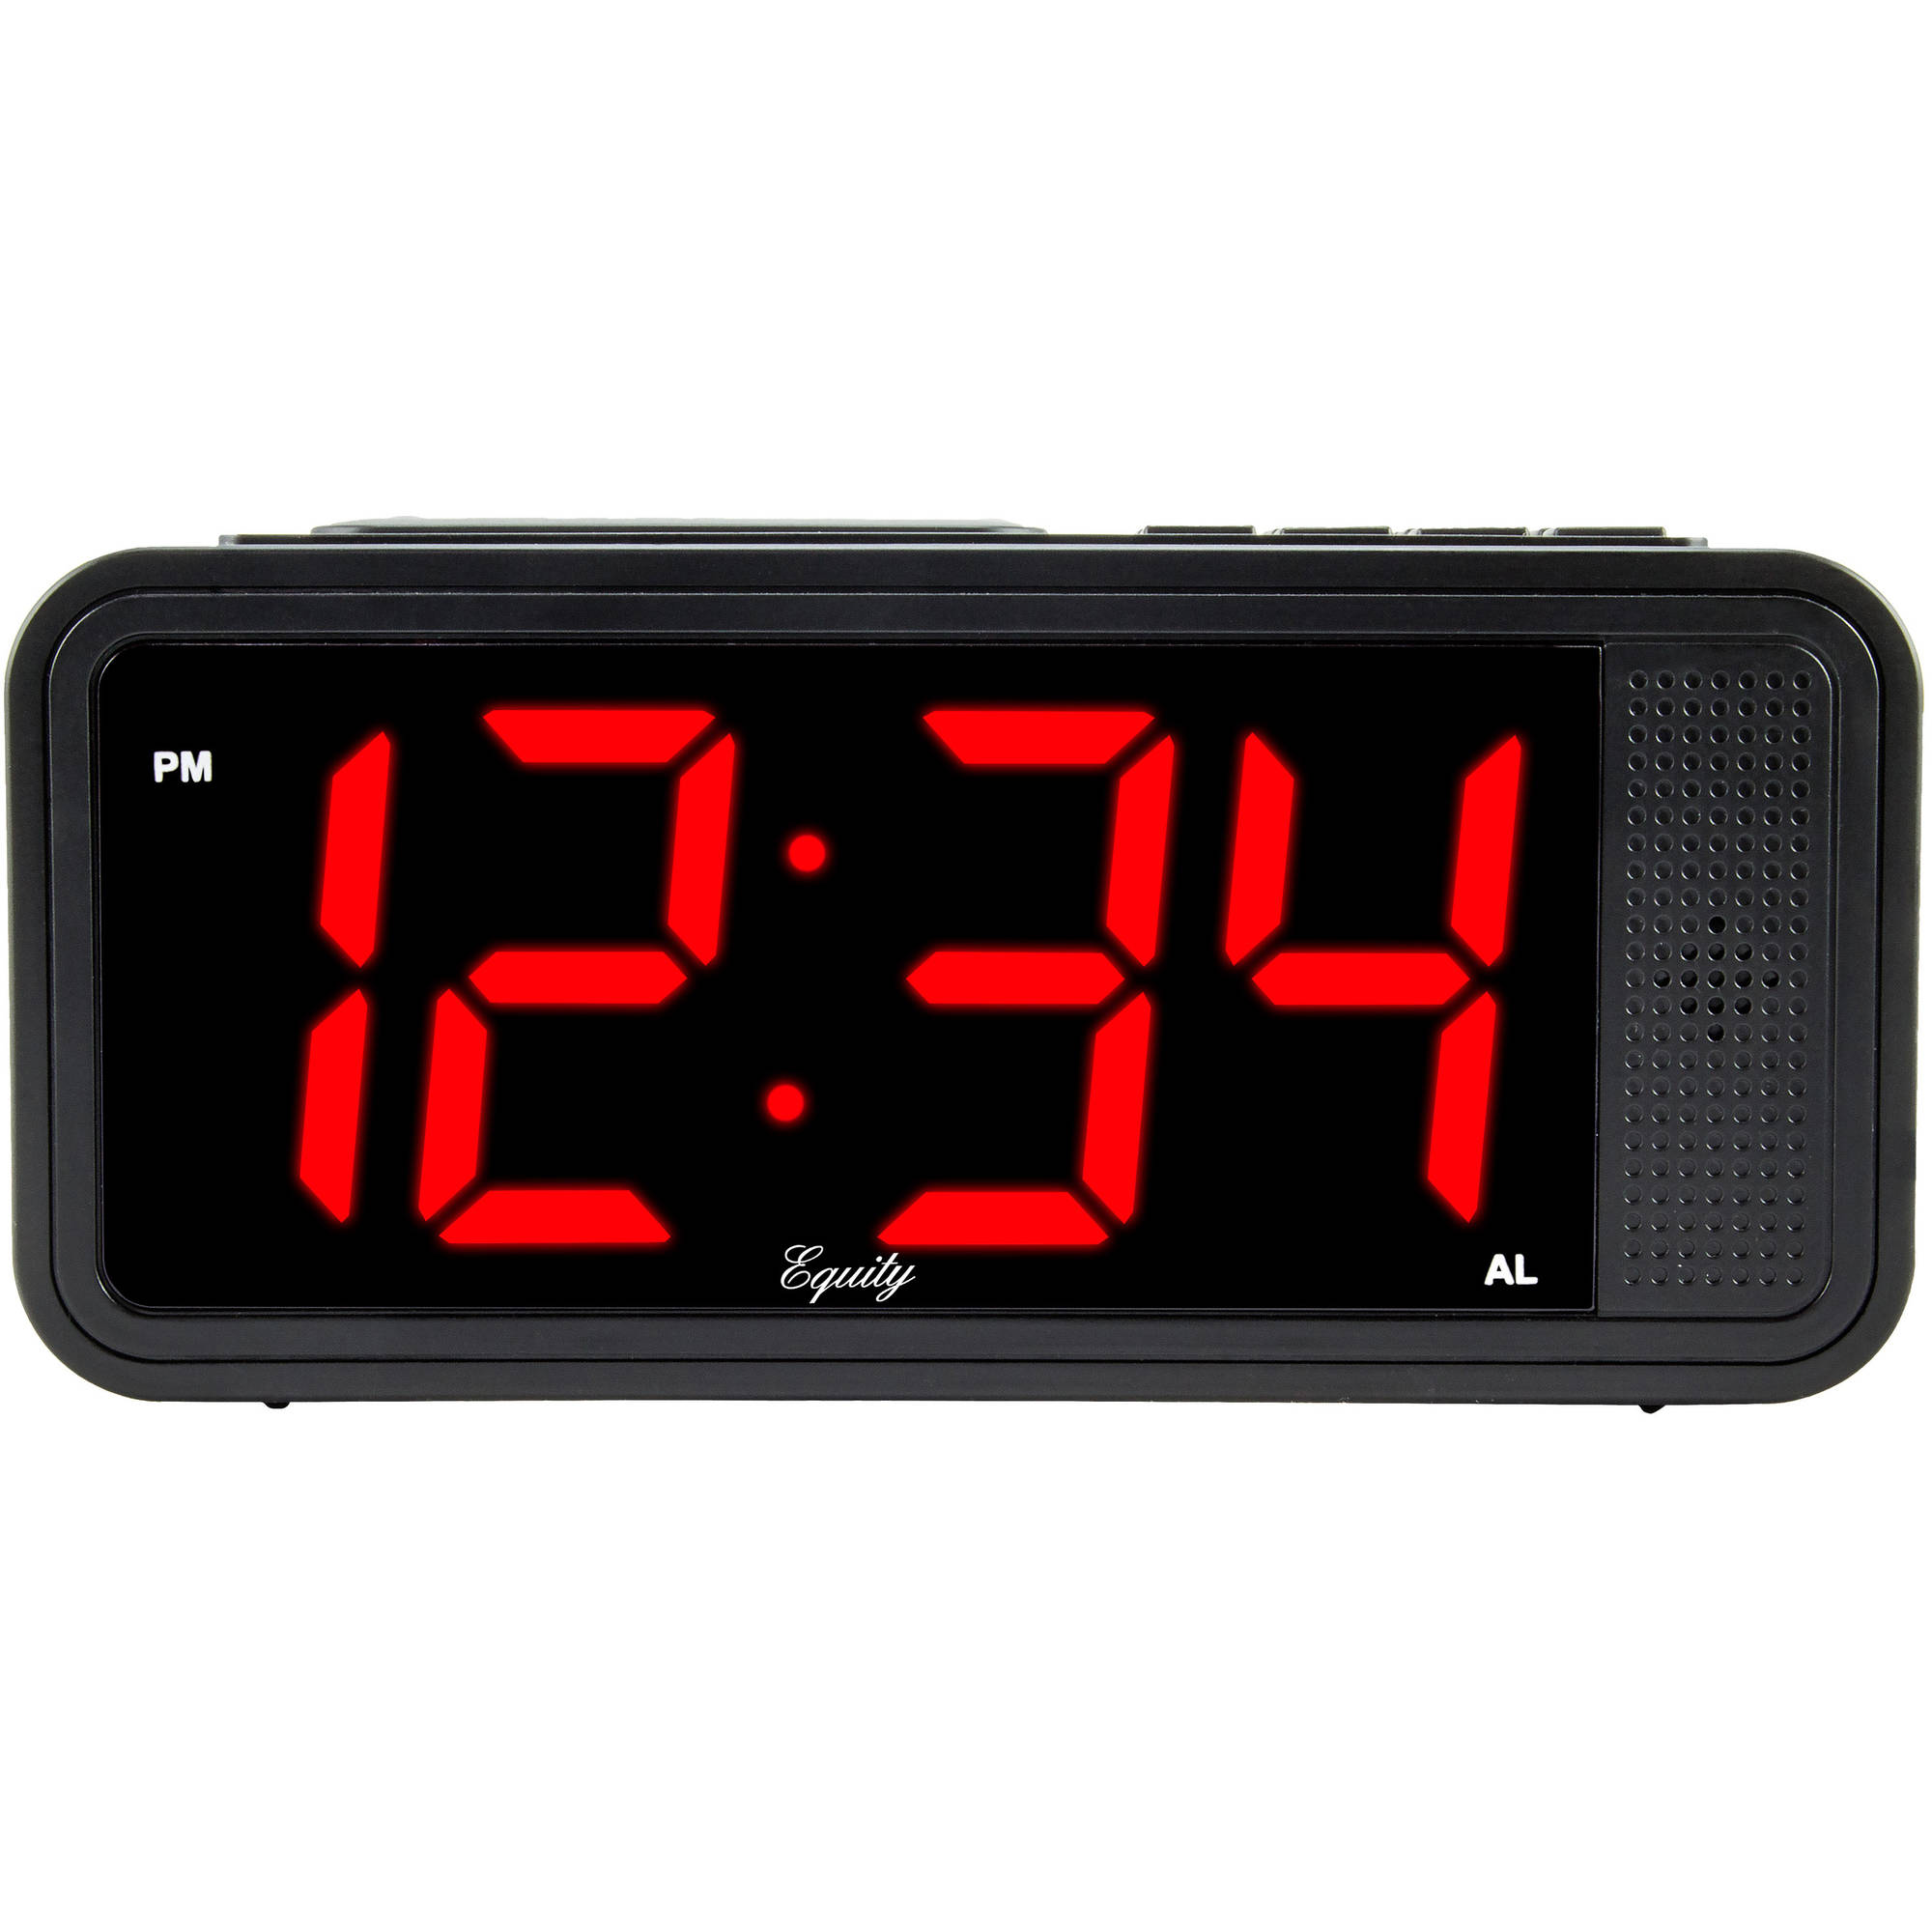 "Equity by La Crosse 75907 1.8"" LED Simple Set Alarm Clock with Dimmer by La Crosse Technology Ltd."